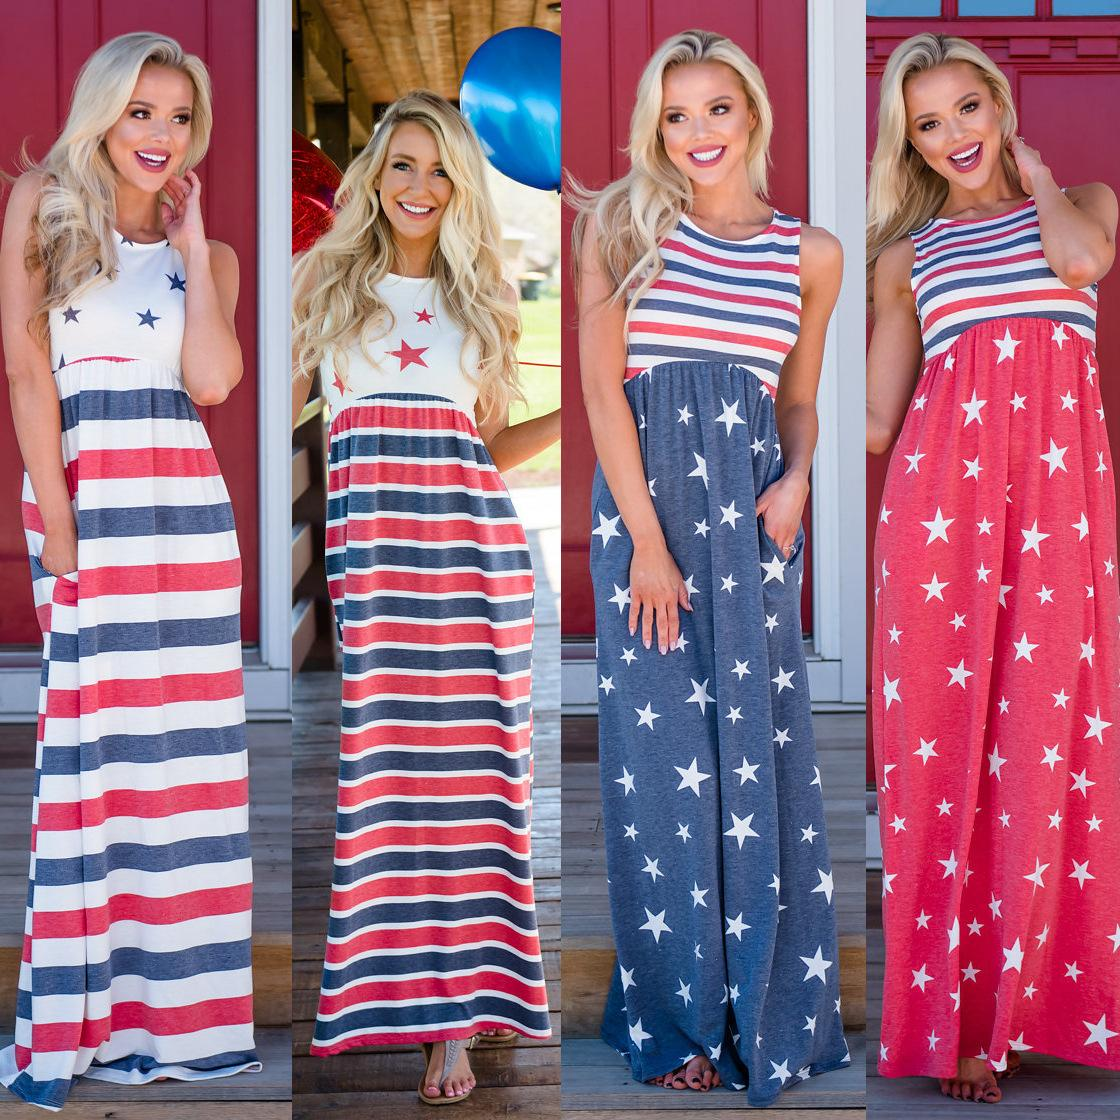 86a317f627 Women Ladies Stars Stripe Maxi Dress Clubwear Party Independence Day  Sleeveless Maternity Print Casual Dresses AAA451 Casual Evening Dresses  Womens Sundress ...